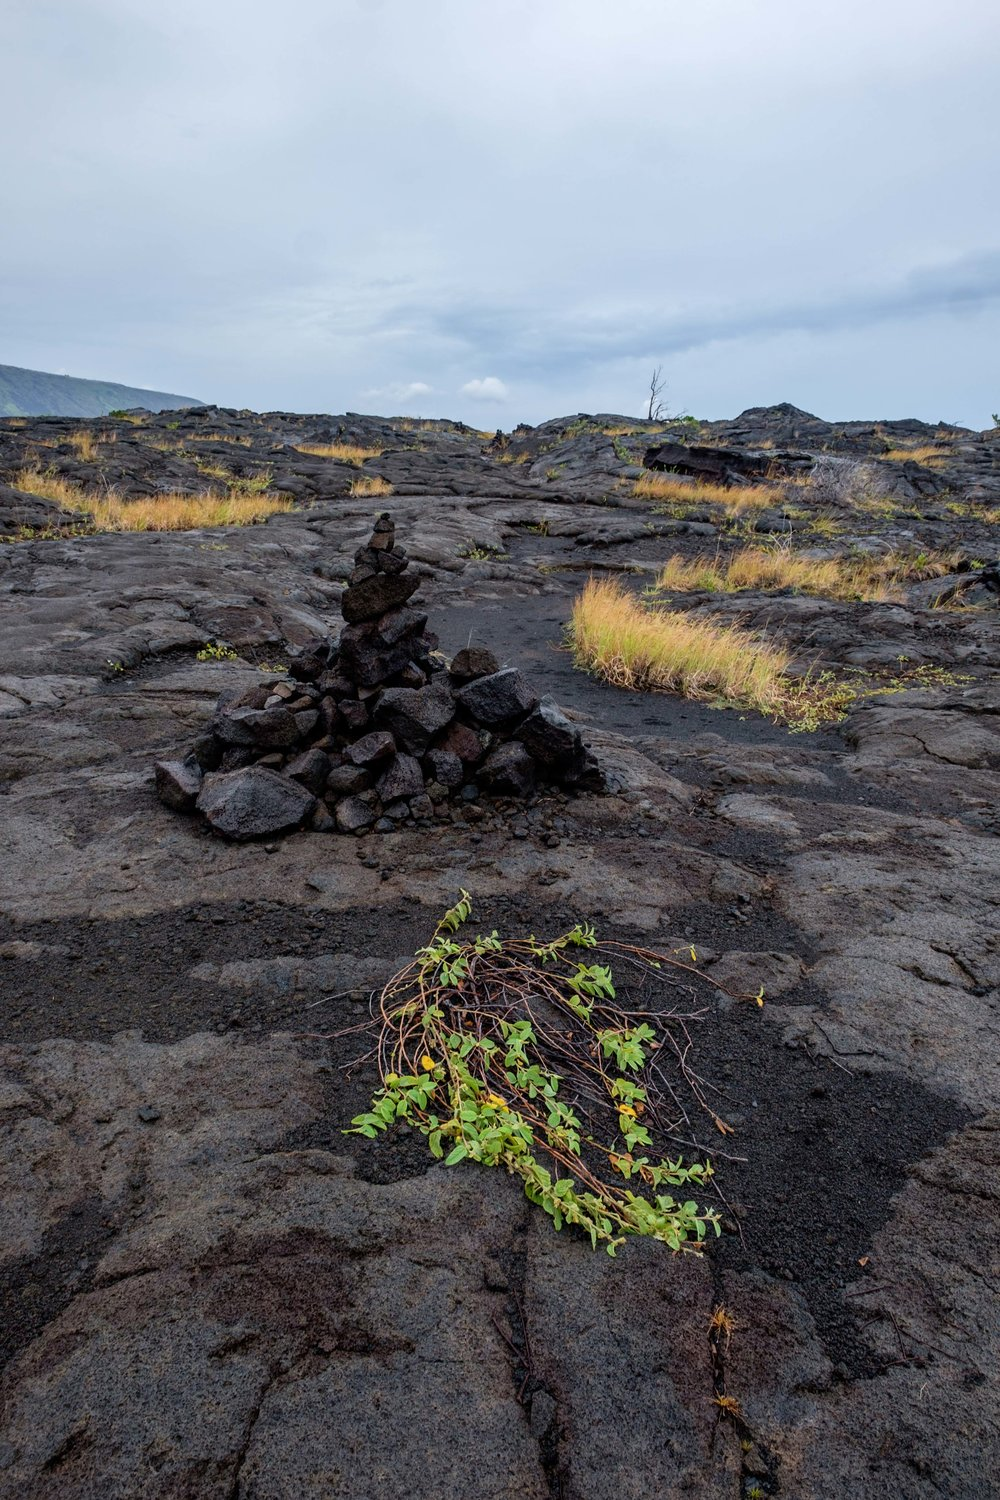 I took a hike out to see the Pu'u Loa Petroglyphs.